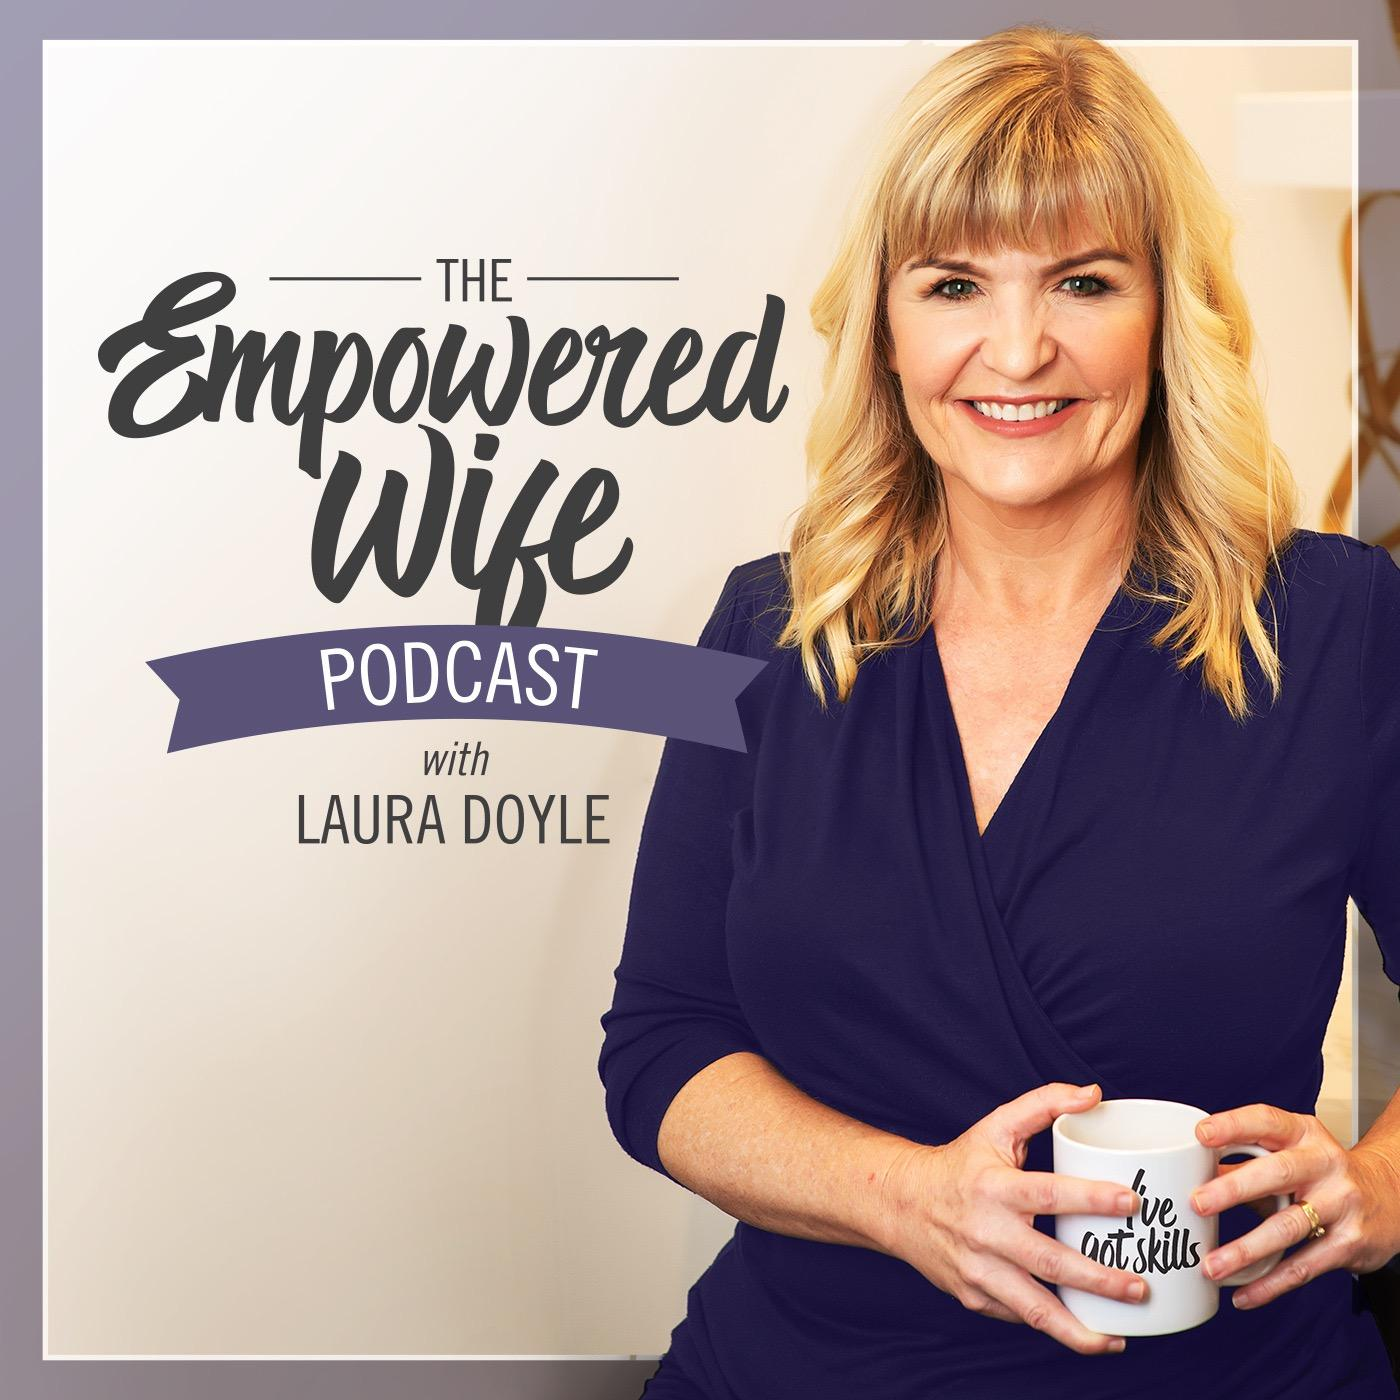 079: You NEED This One Thing to Fix Your Marriage